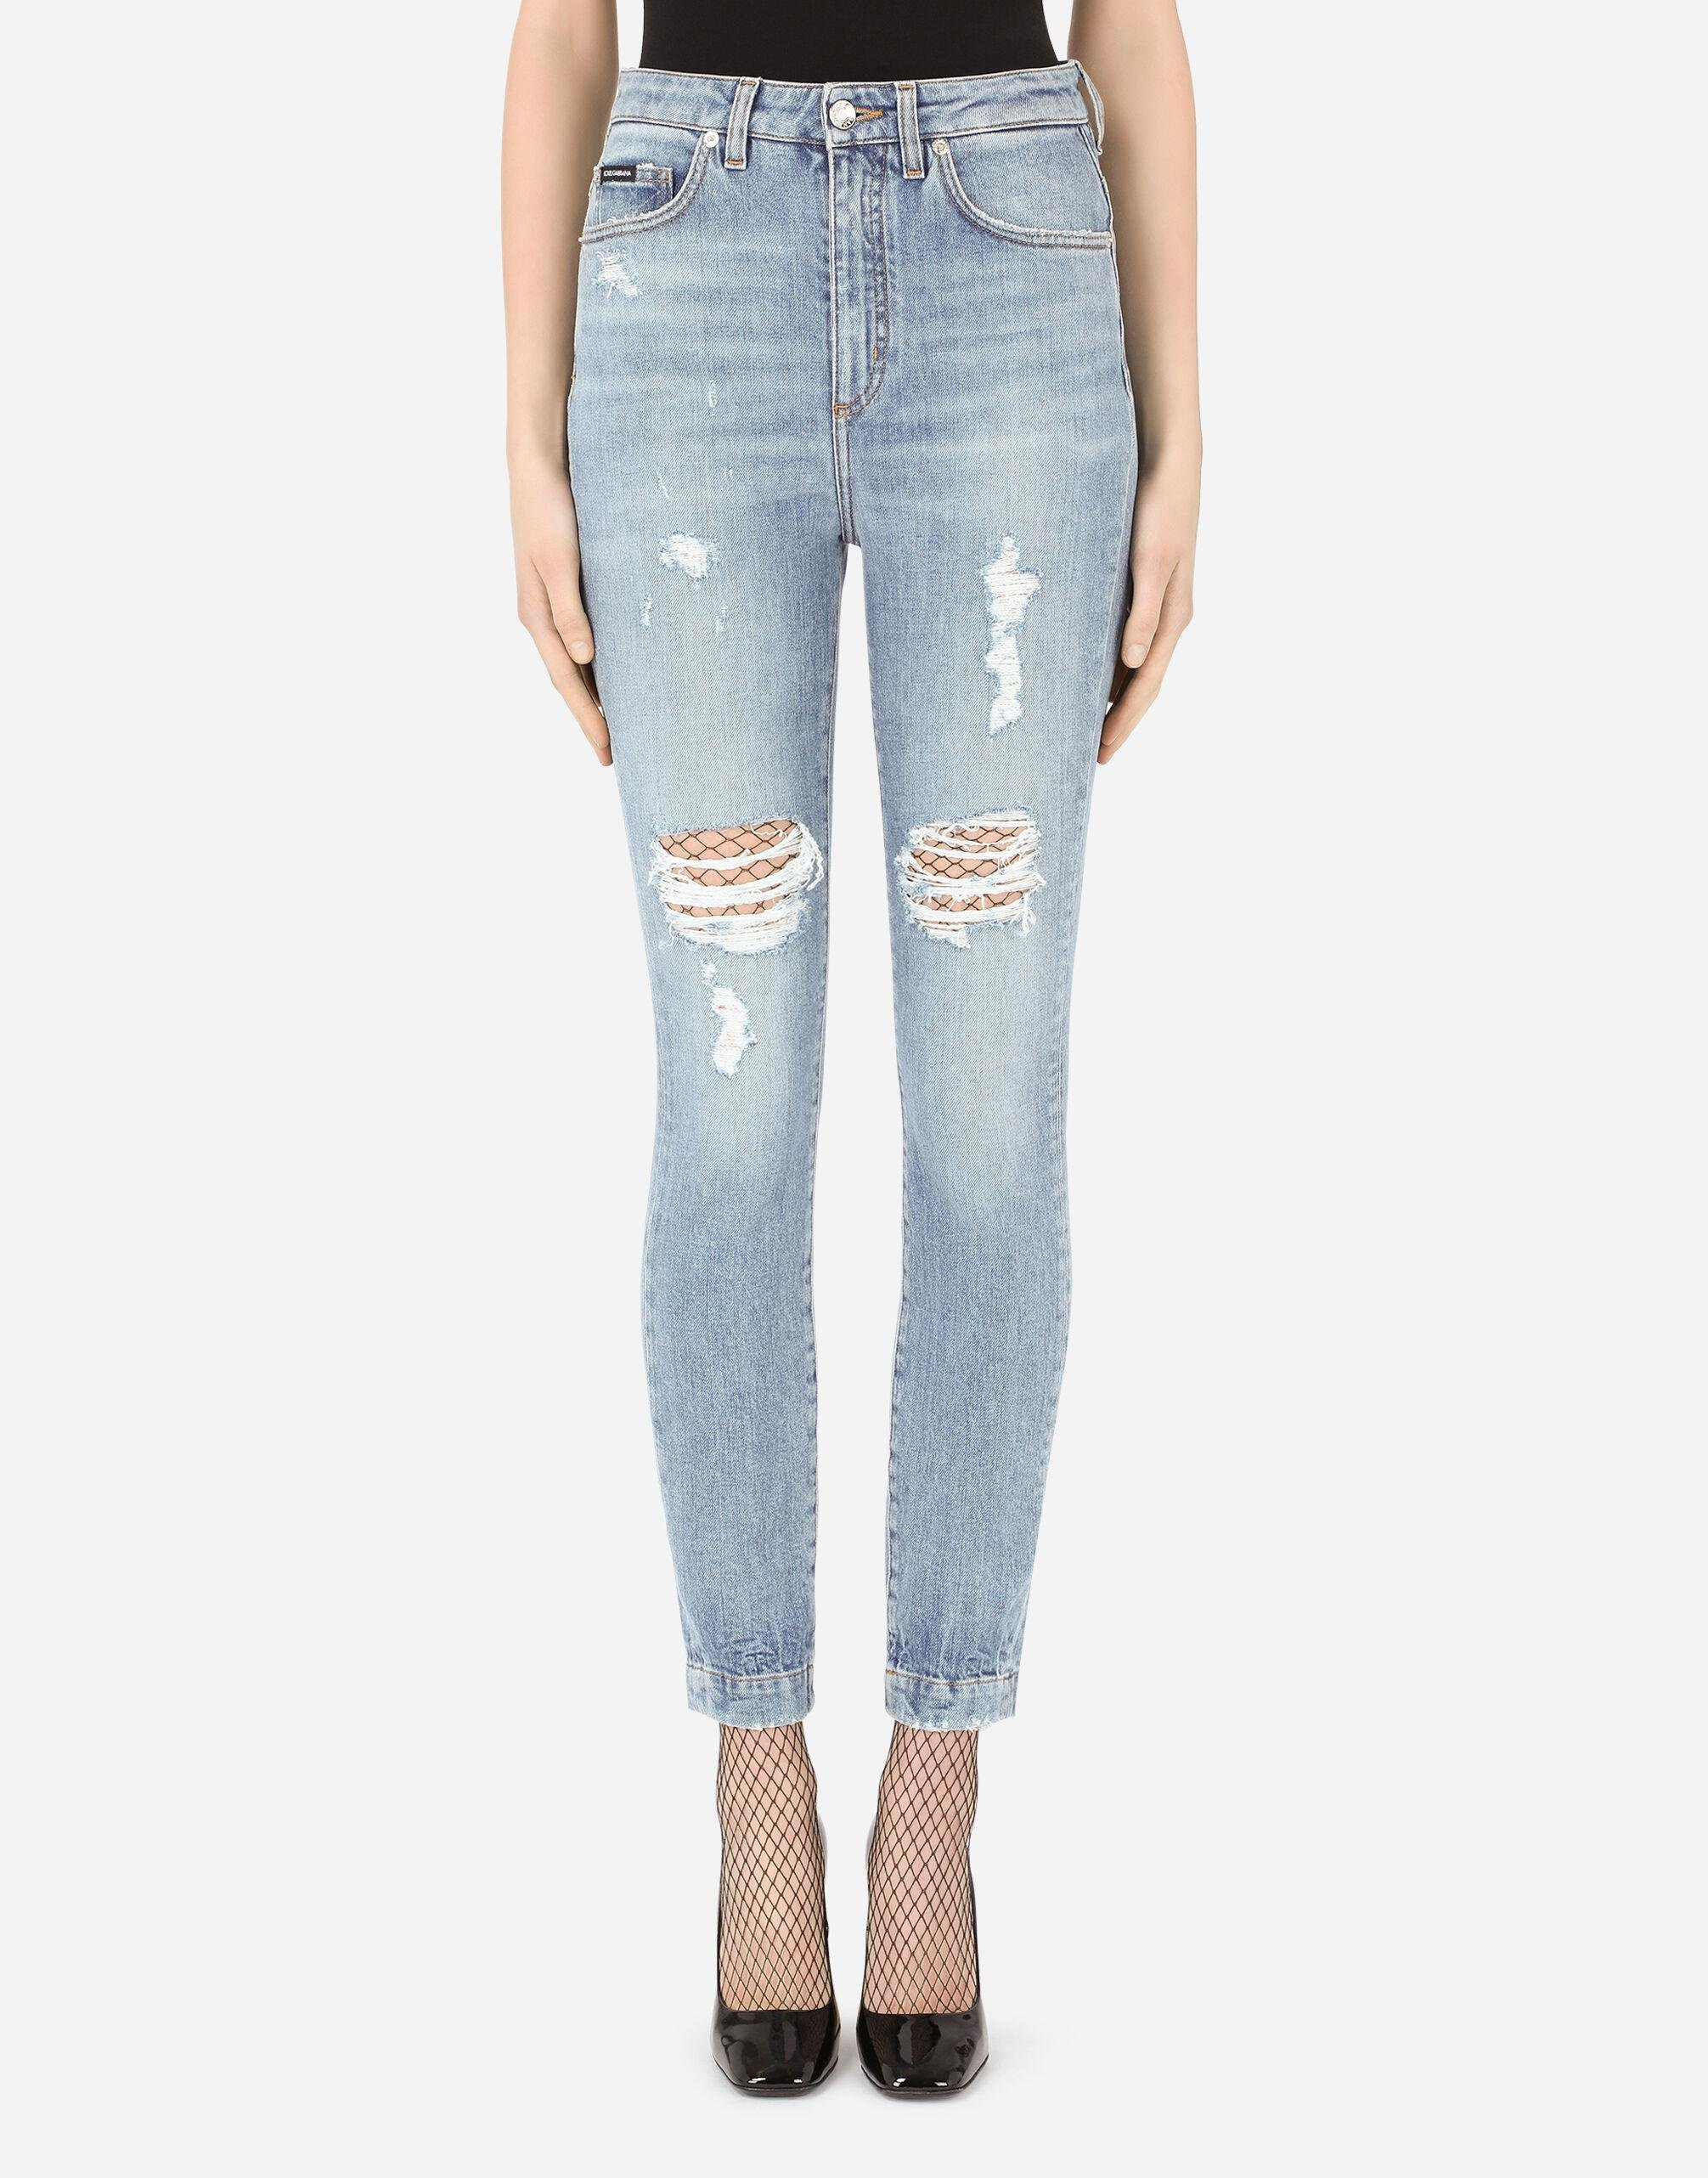 Stretch denim Audrey jeans with rips